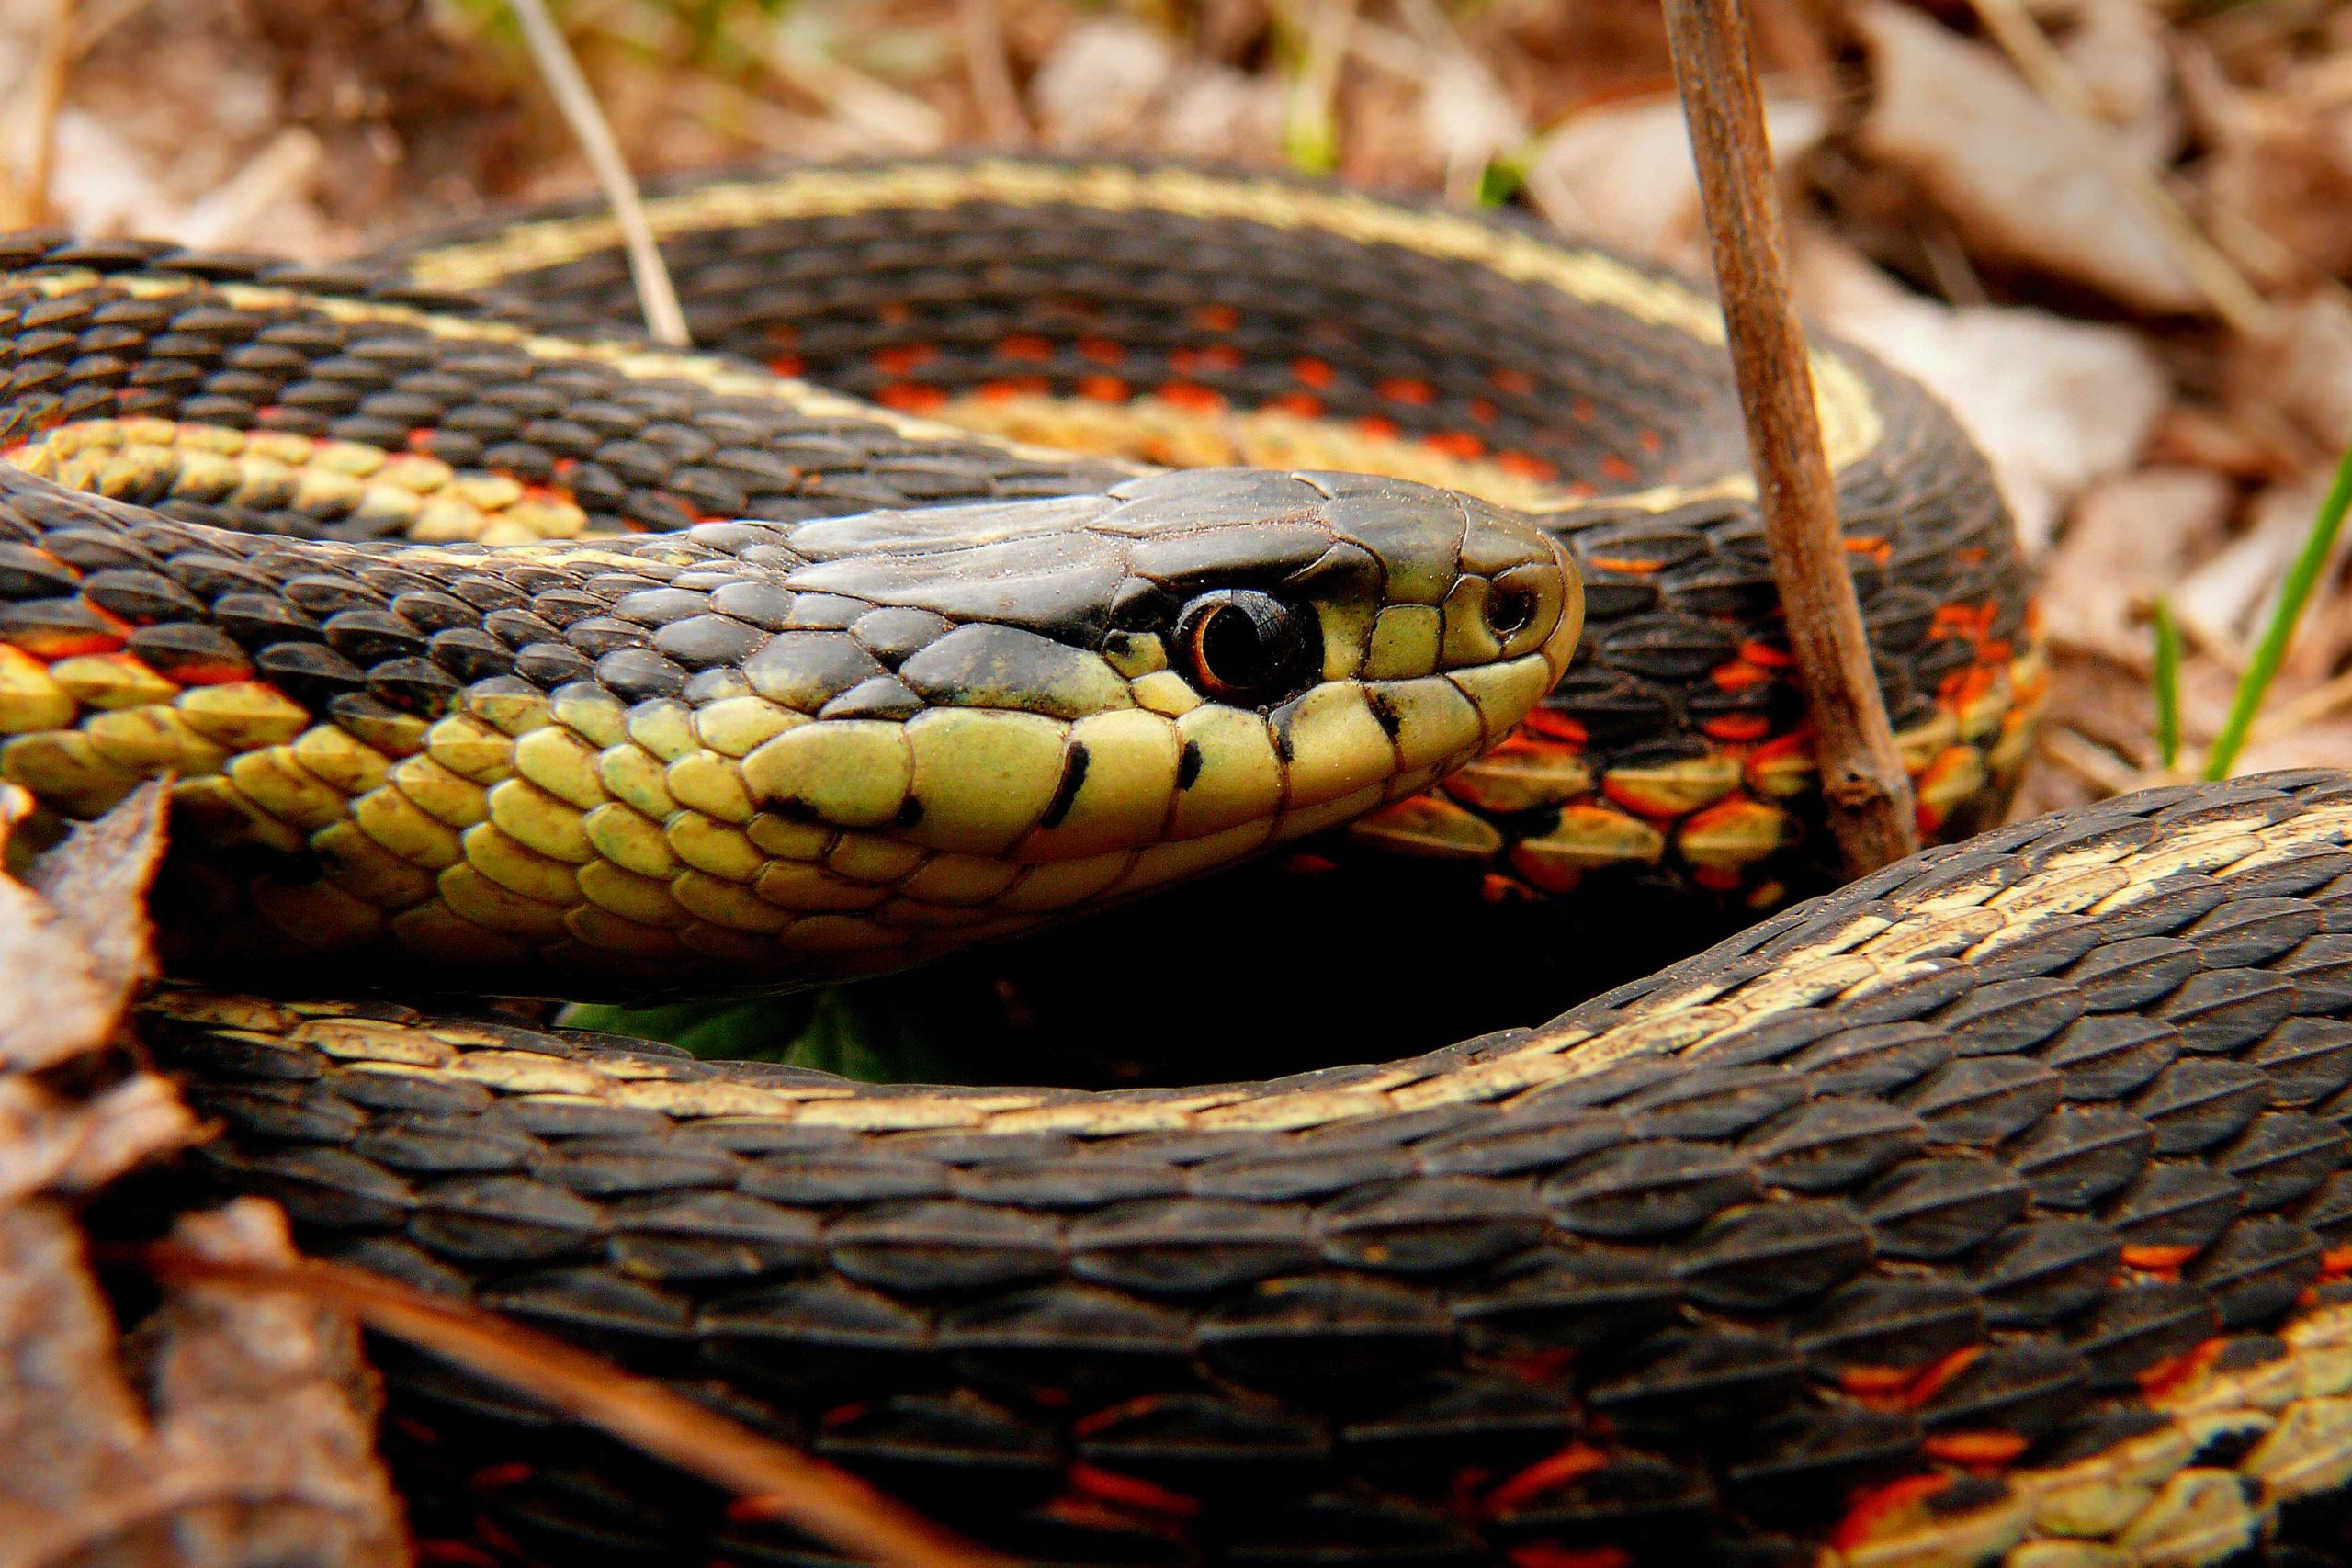 A red-sided garter snake coiled up.